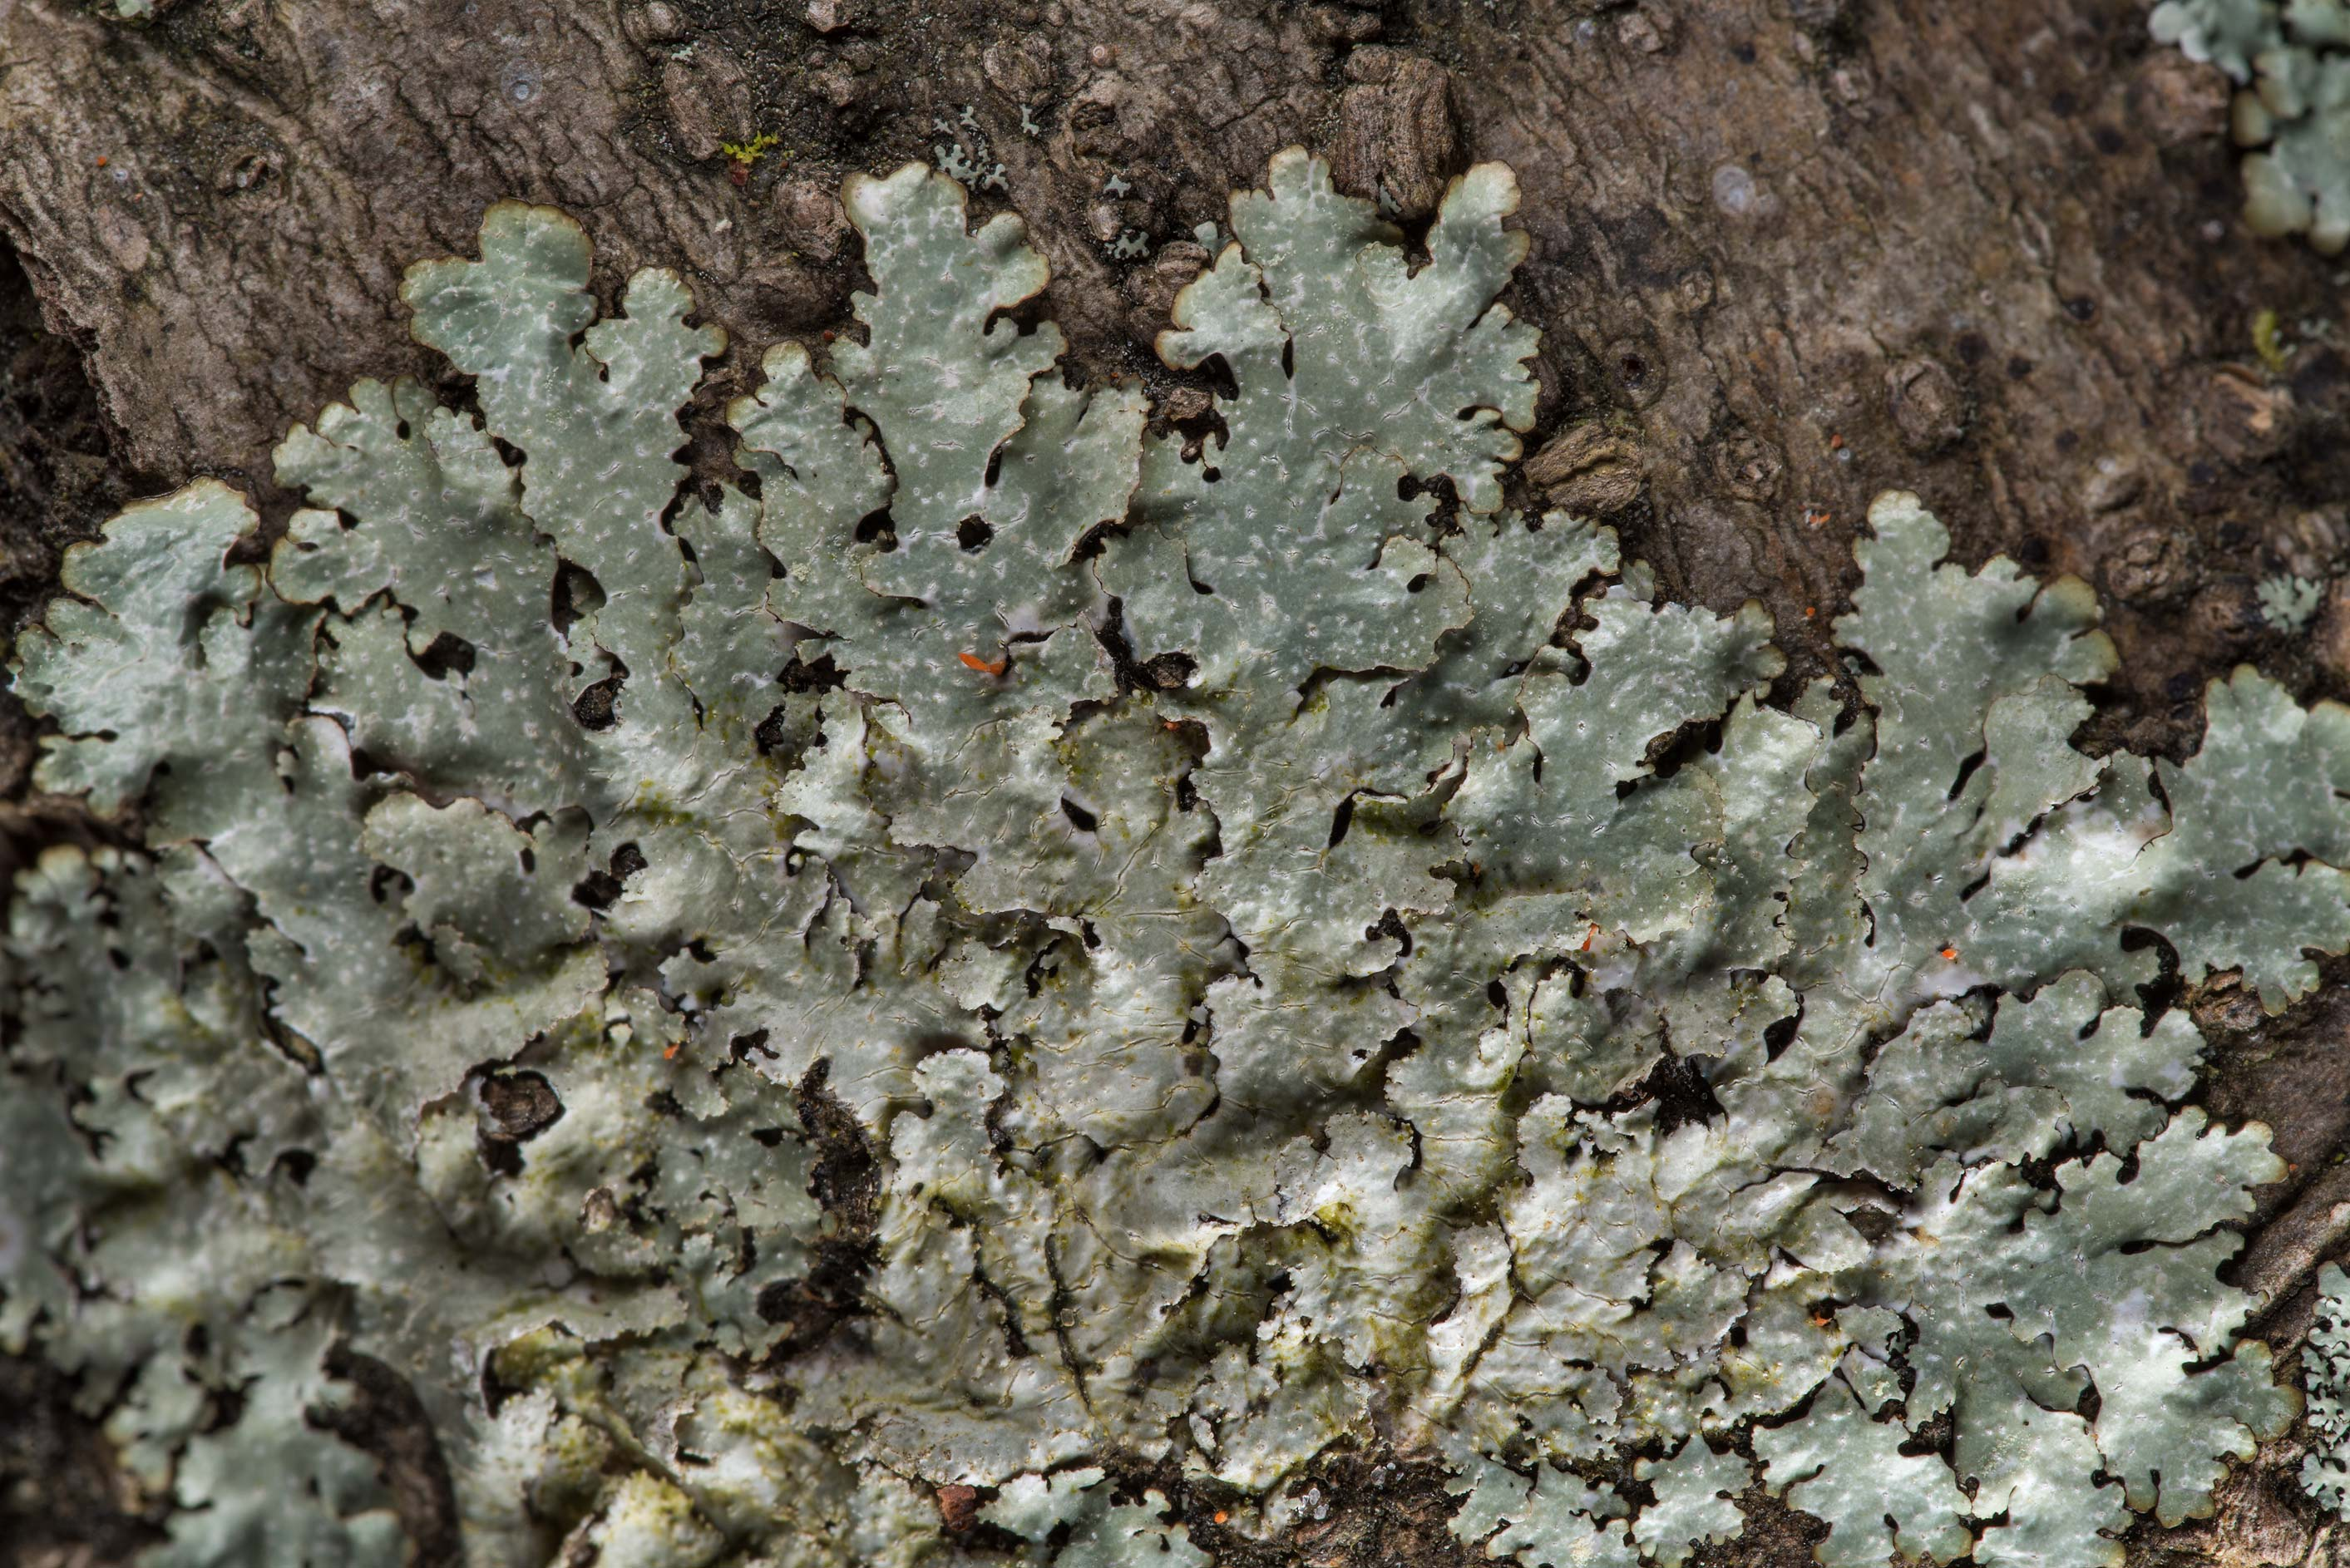 Speckled shield lichen (Punctelia) on a tree on...National Forest. Richards, Texas